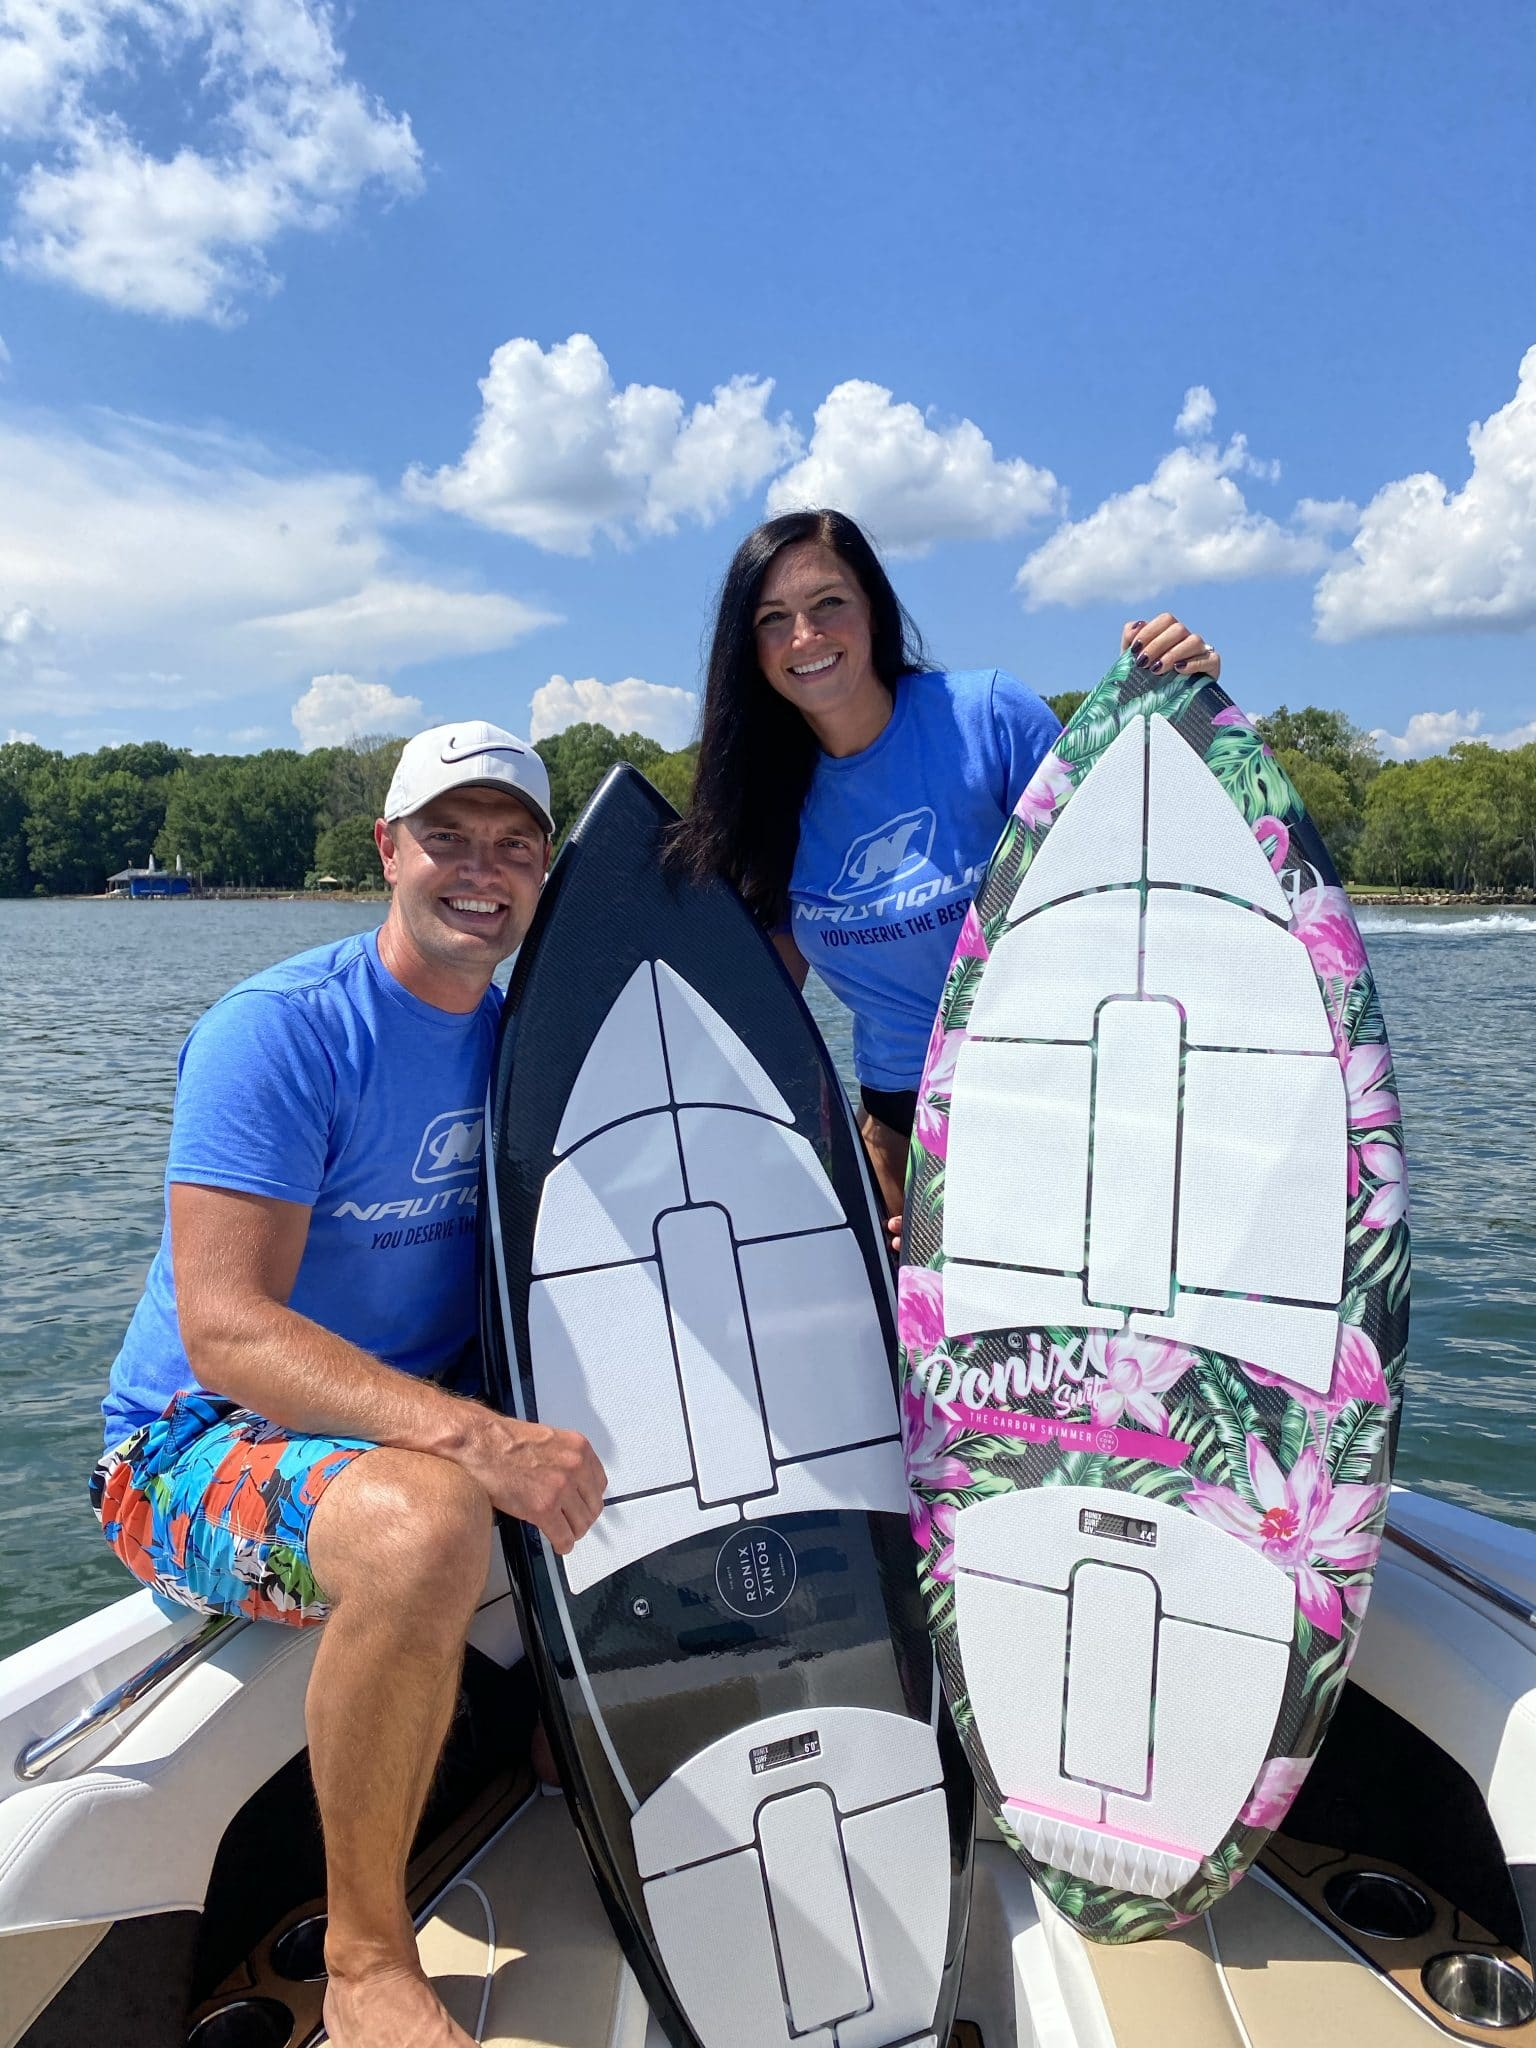 40th Birthday, Lake Norman, Stilettos and Diapers, Wake Surfing, Ronix